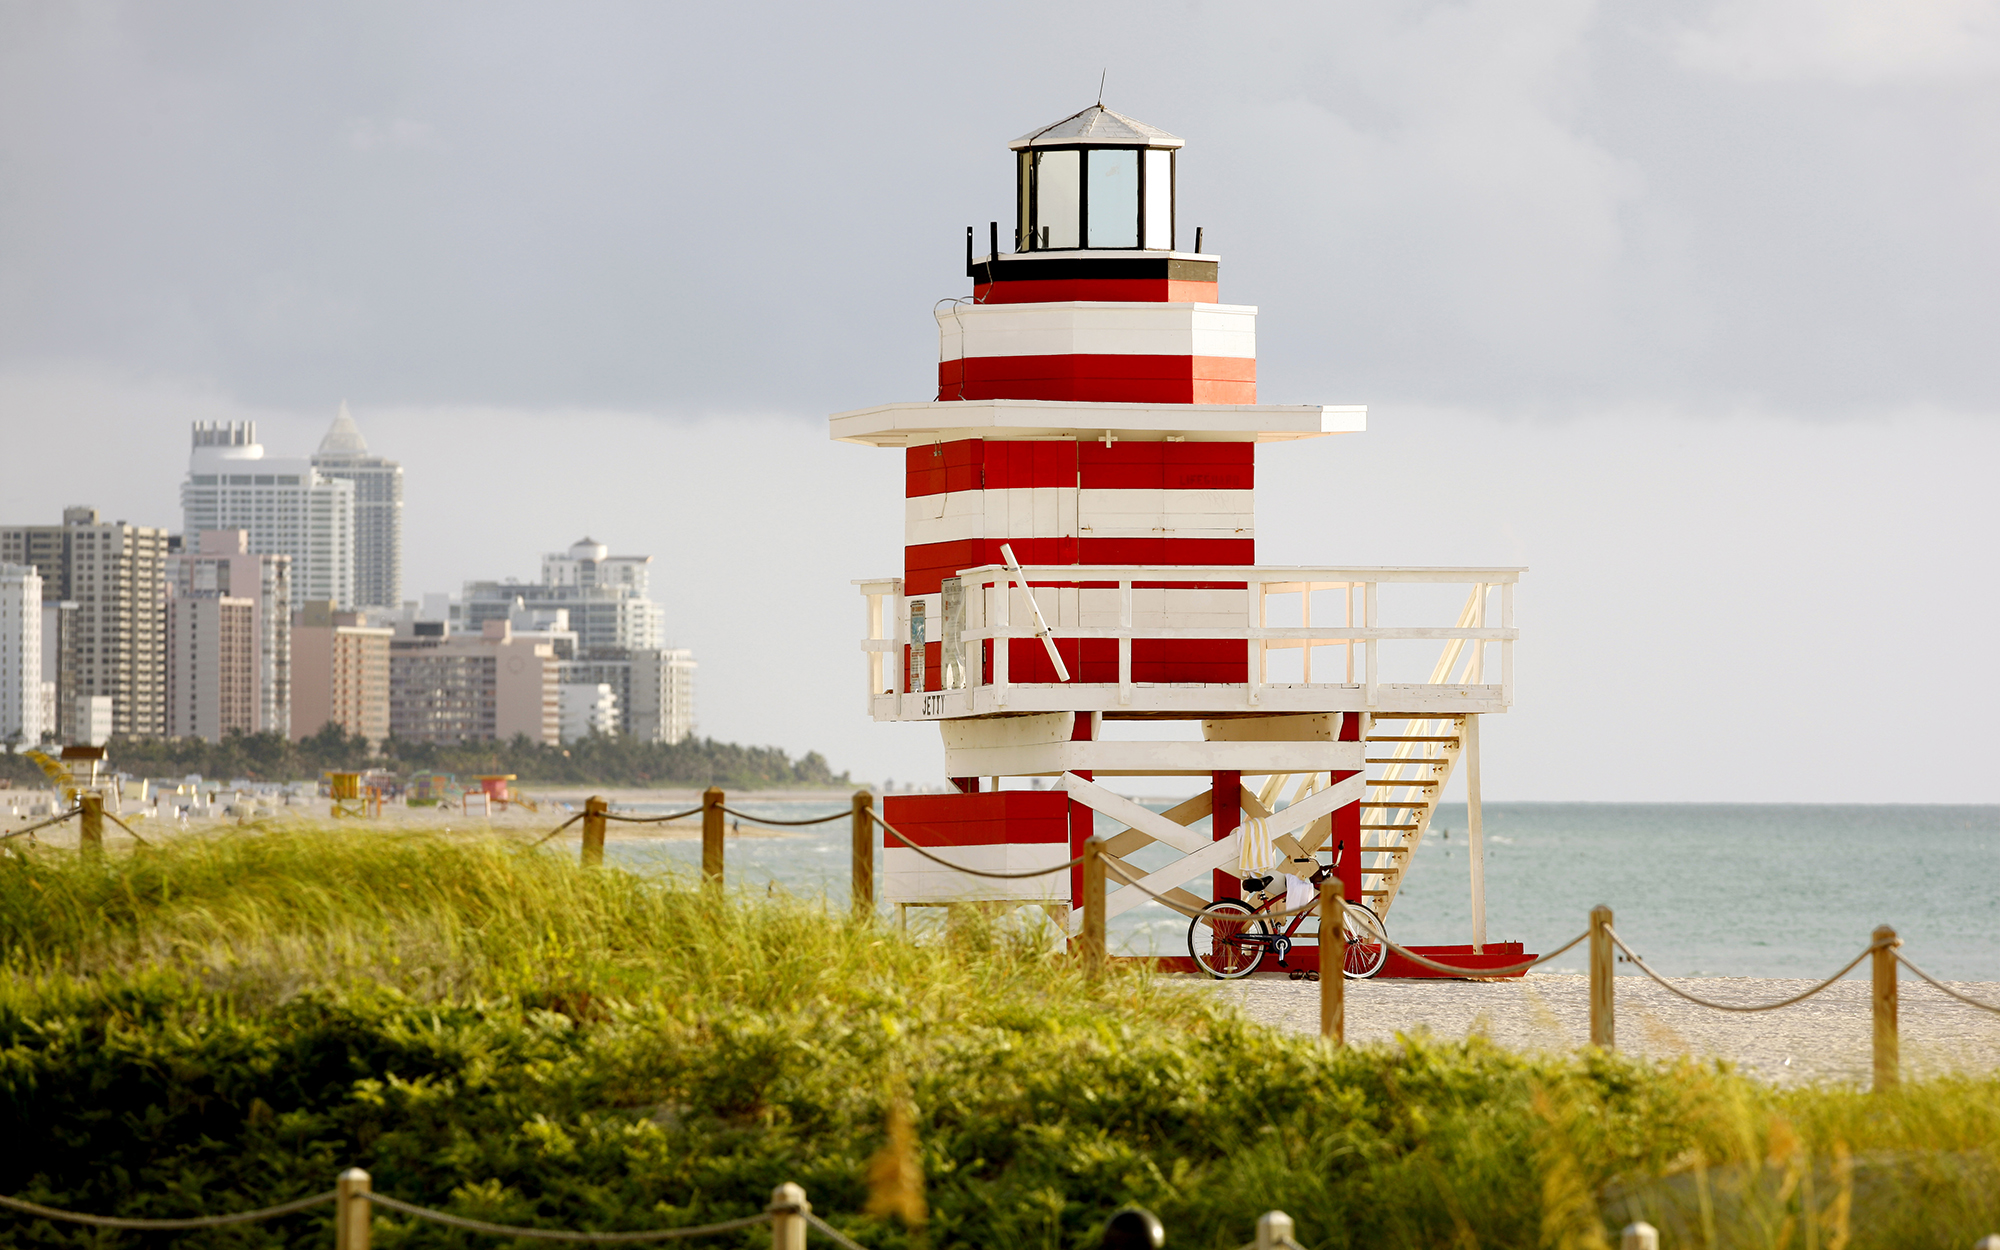 South Beach Art Deco Lifeguard Station (Photo by Hoberman Collection/UIG via Getty Images)